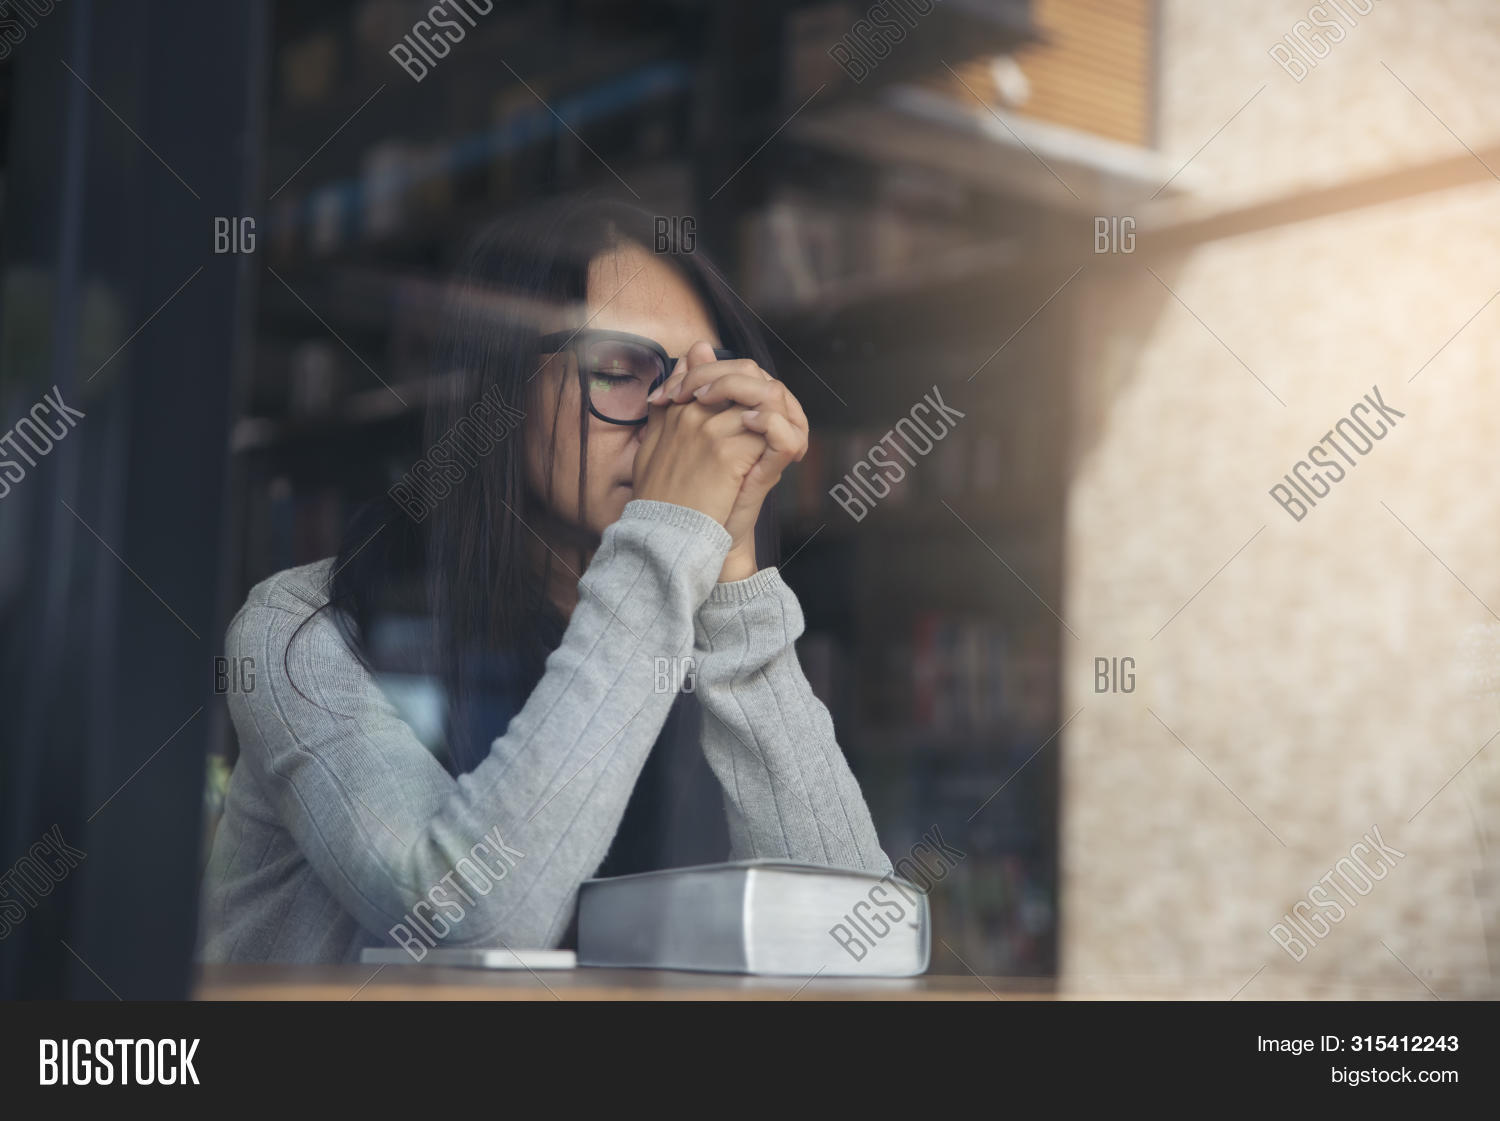 Person Side View Asian Image Photo Free Trial Bigstock